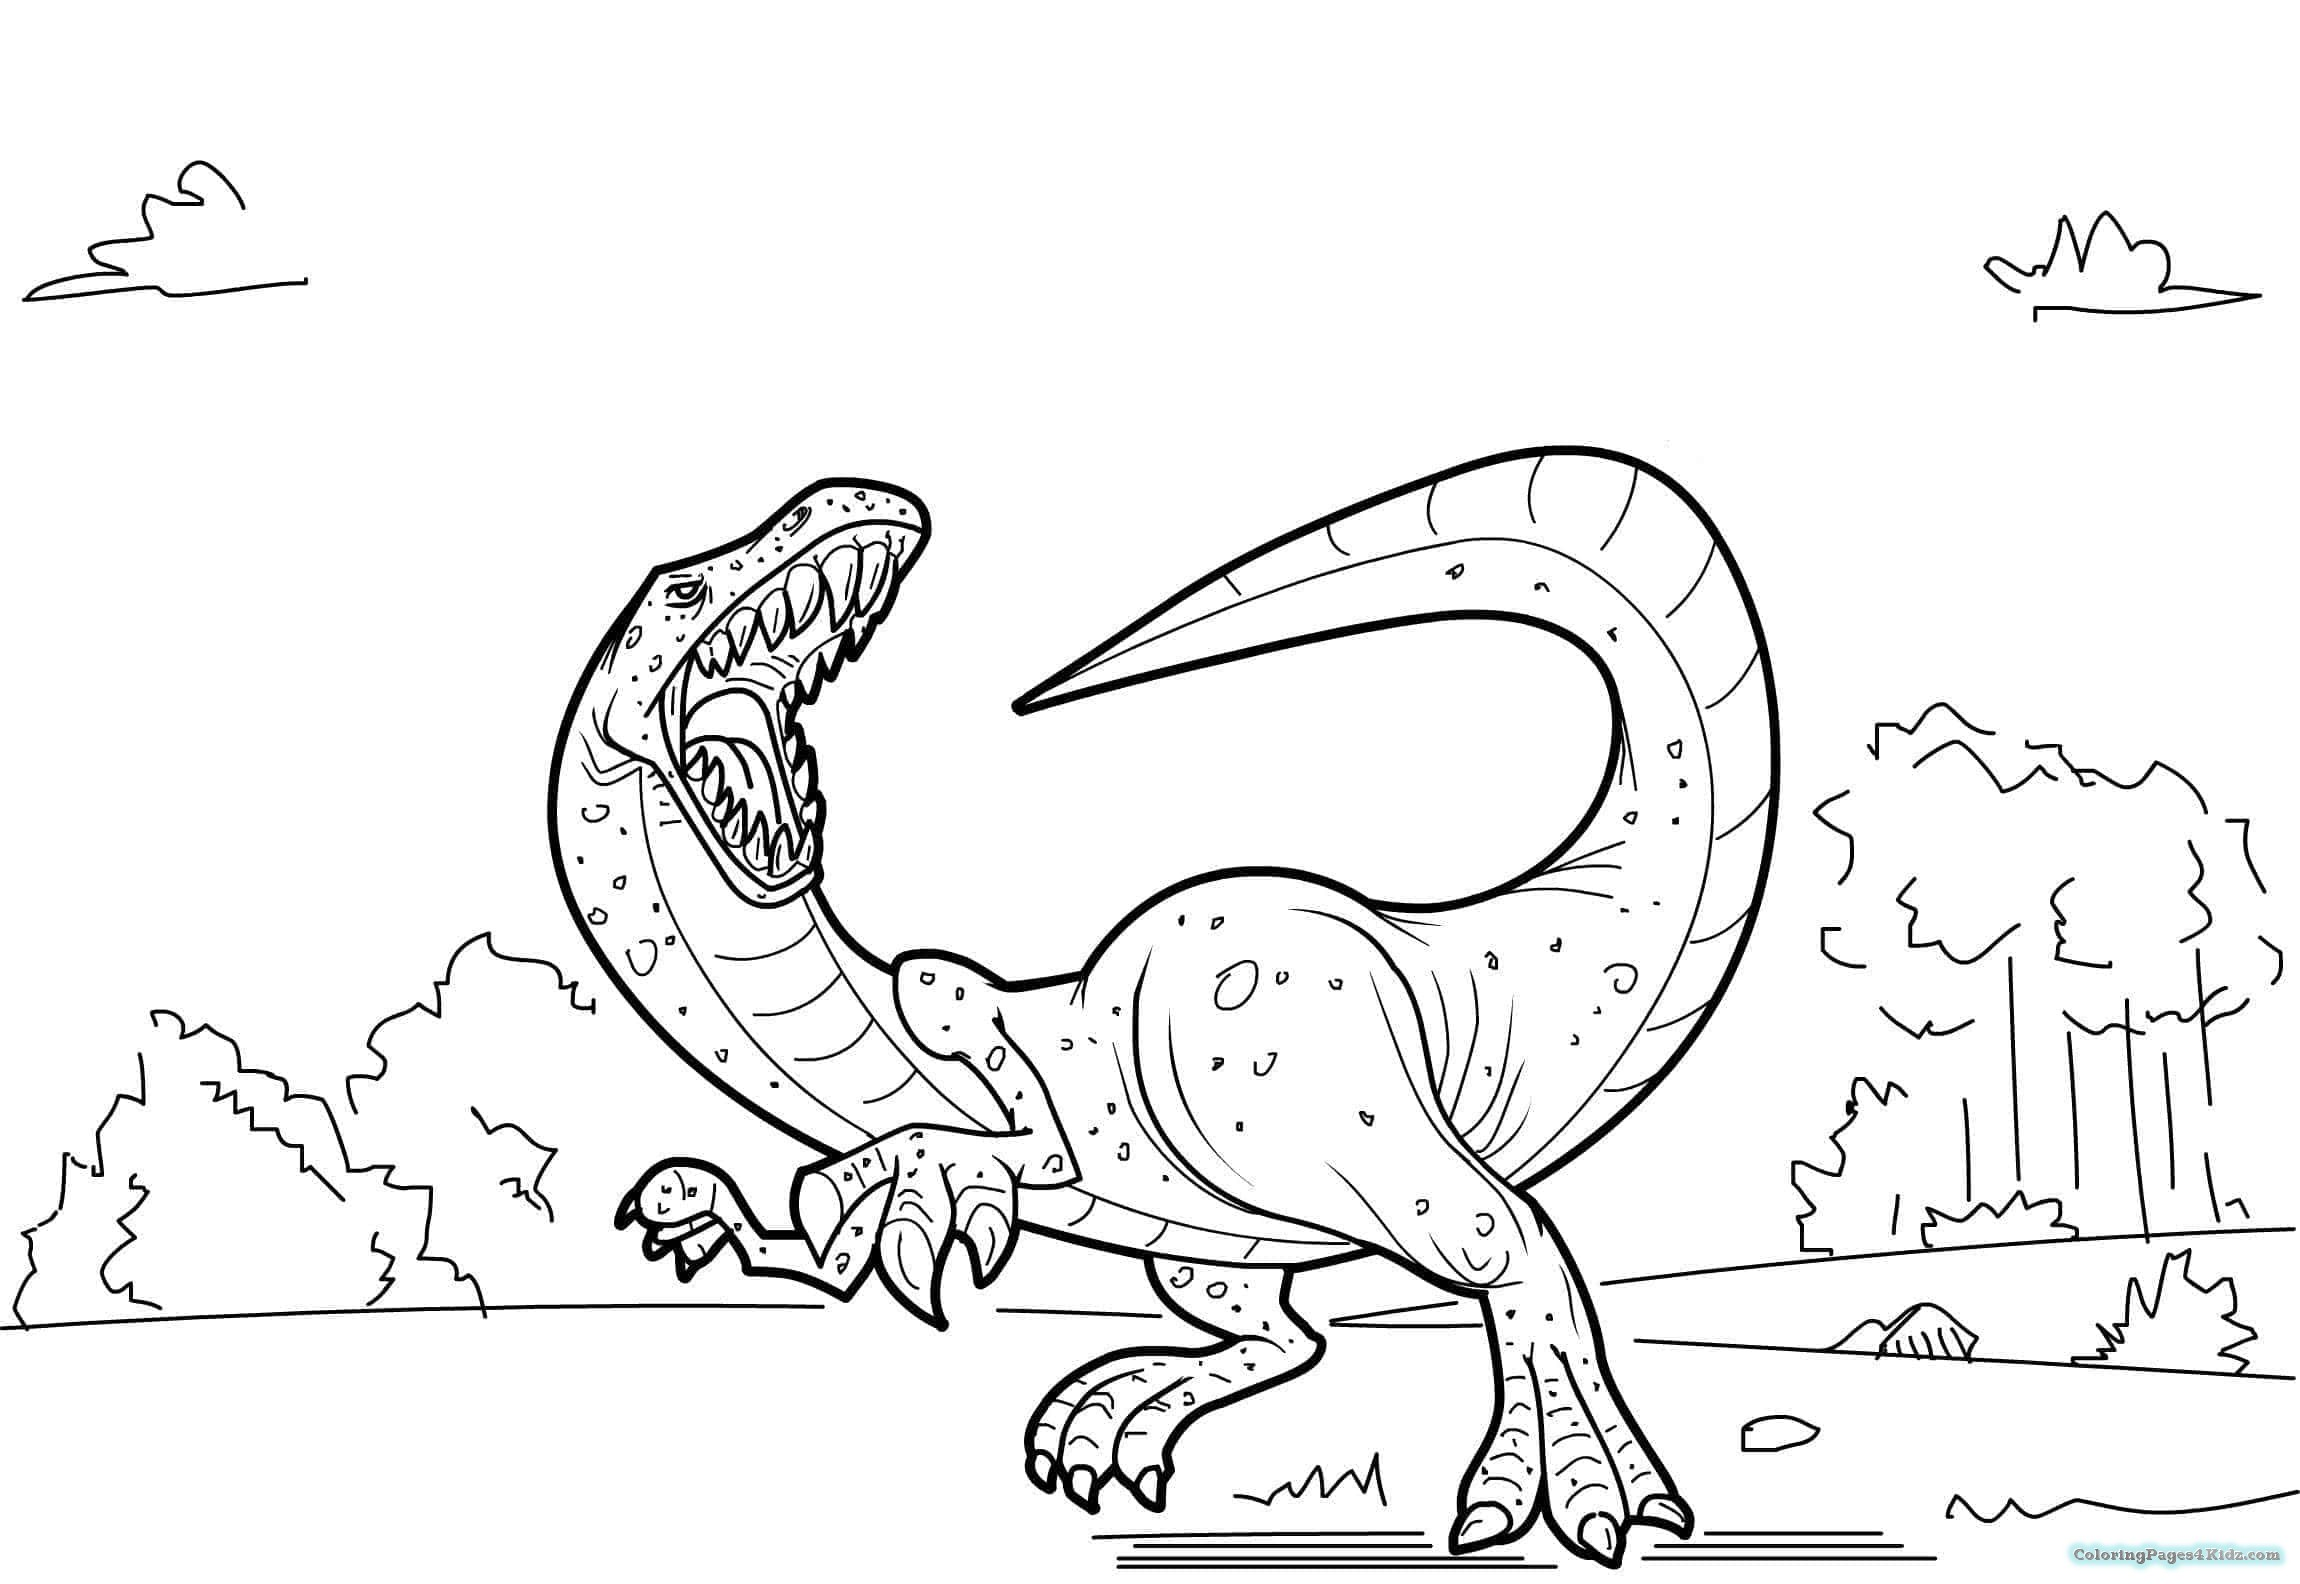 meat eating dinosaur coloring pages meat eating dinosaurs coloring pages t rex coloring eating dinosaur meat pages coloring